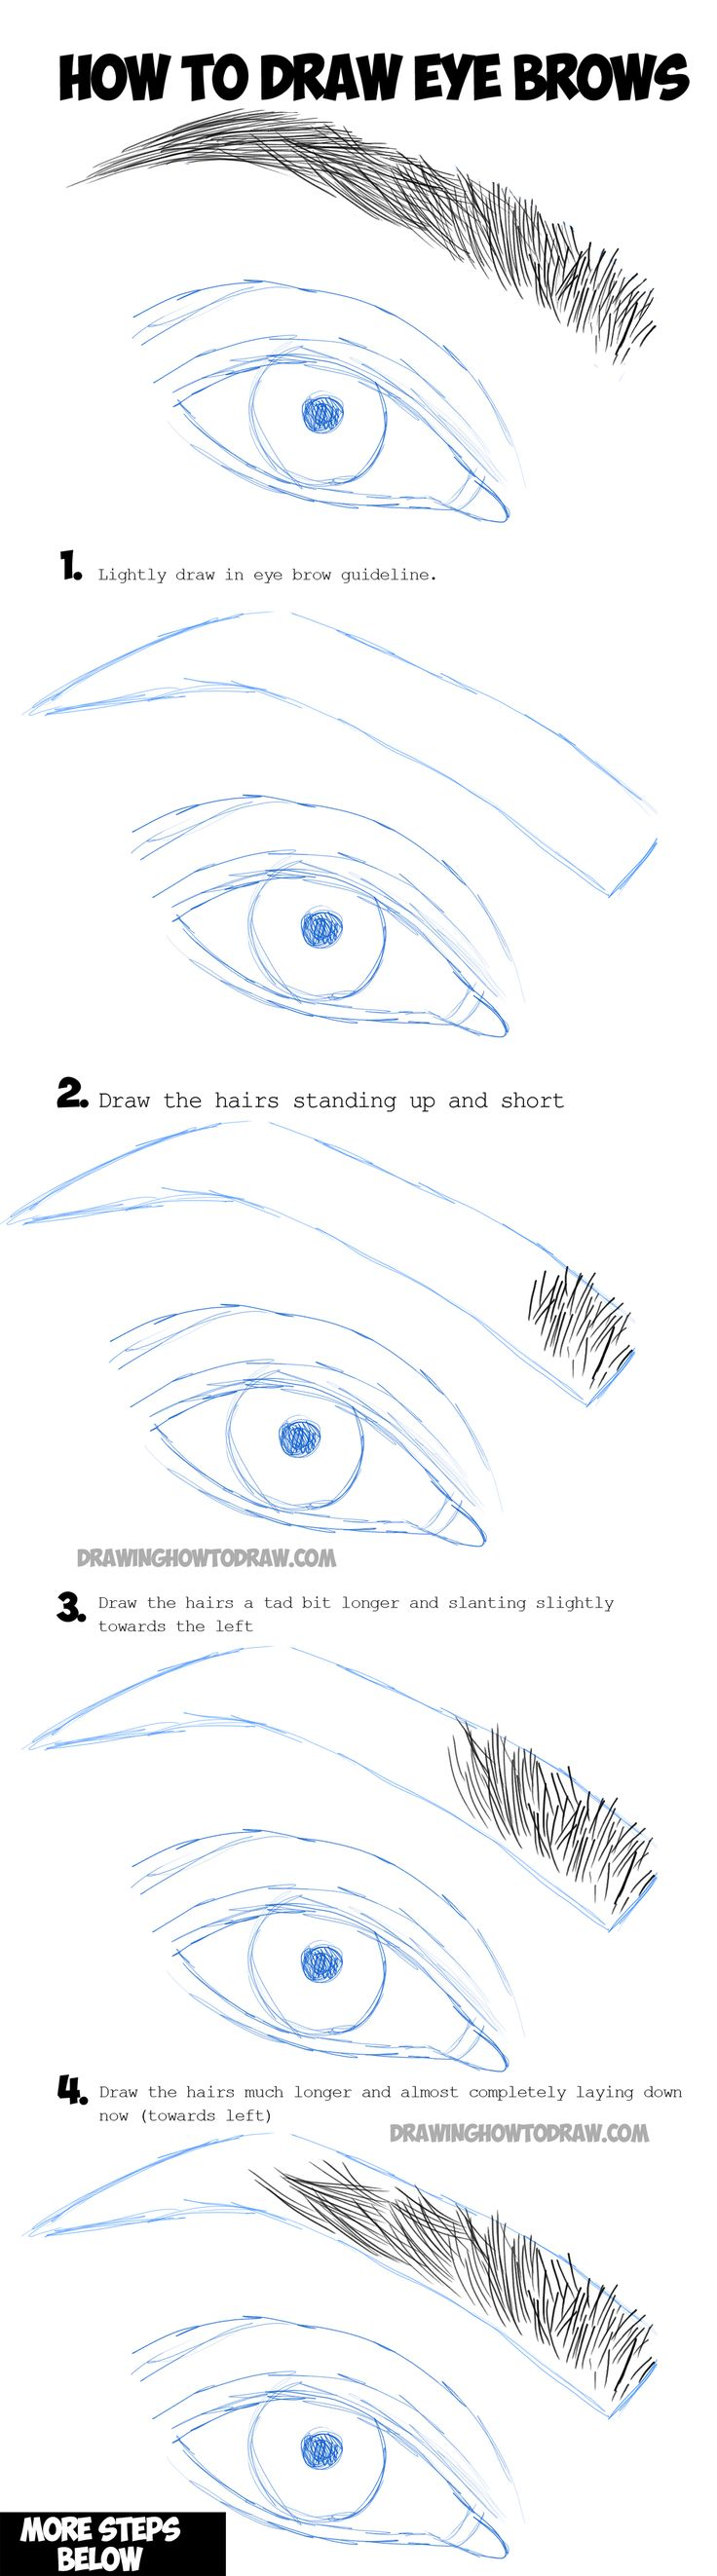 Best 25 eye anatomy ideas on pinterest what is thinking human learn how to draw eye brows step by step drawing tutorial pooptronica